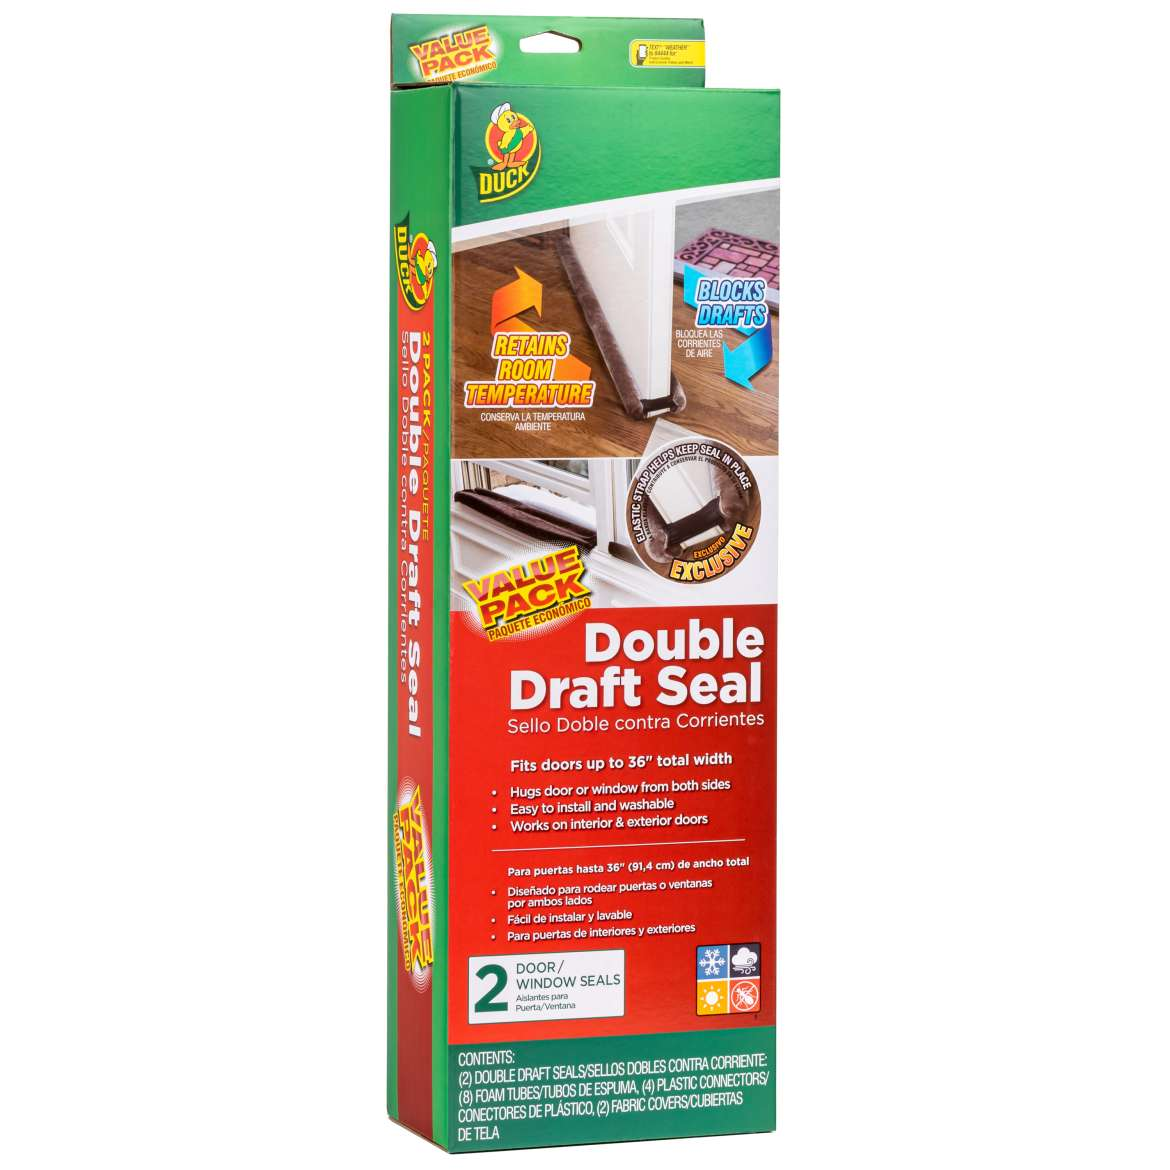 Double Draft Seal